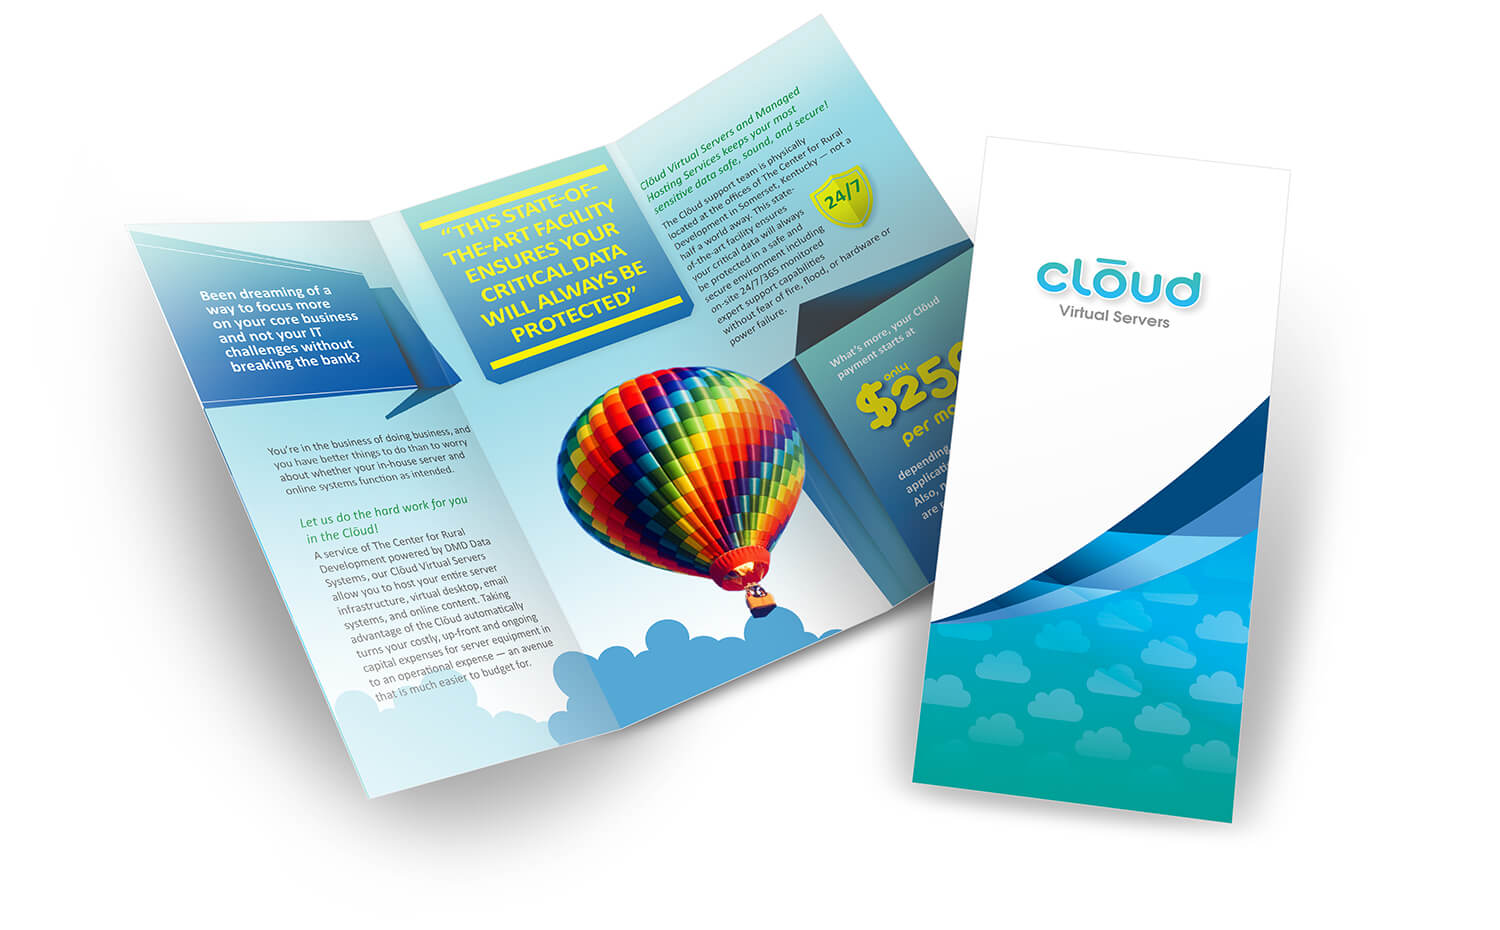 cloud virtual servers - Brochure